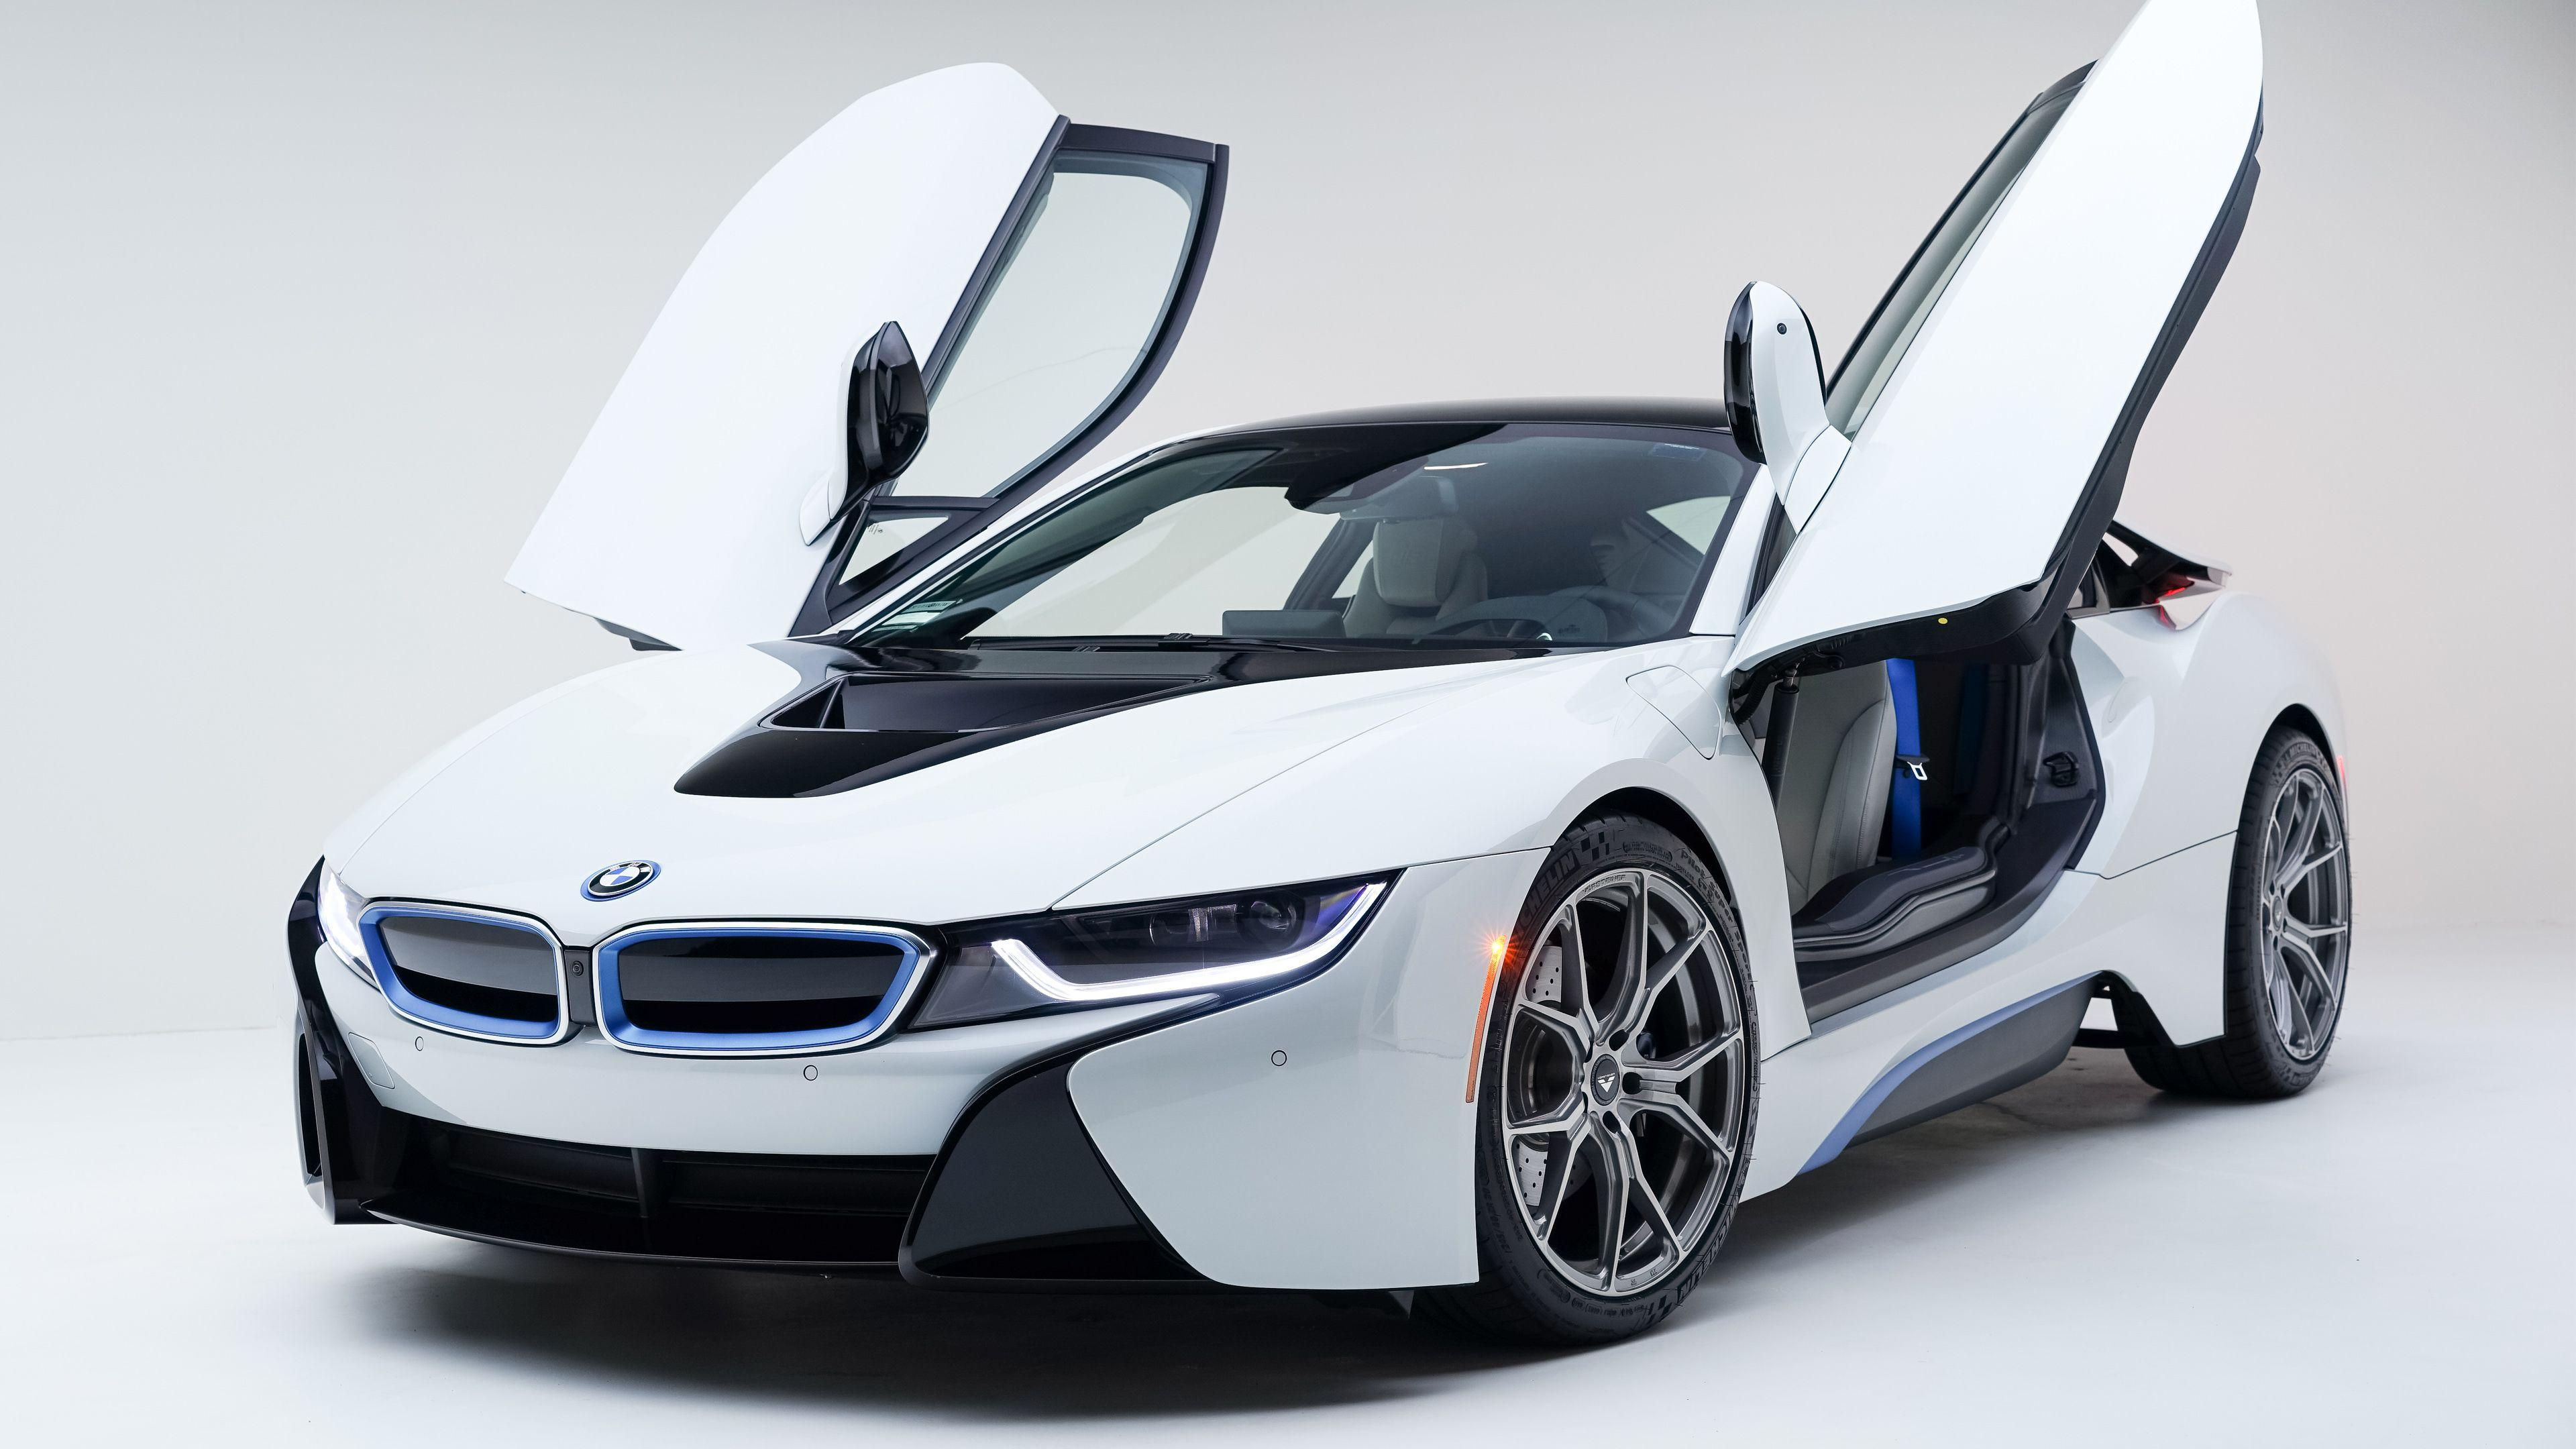 Bmw I8 Wallpaper Convertible 28 Images Bmw I8 Wallpapers